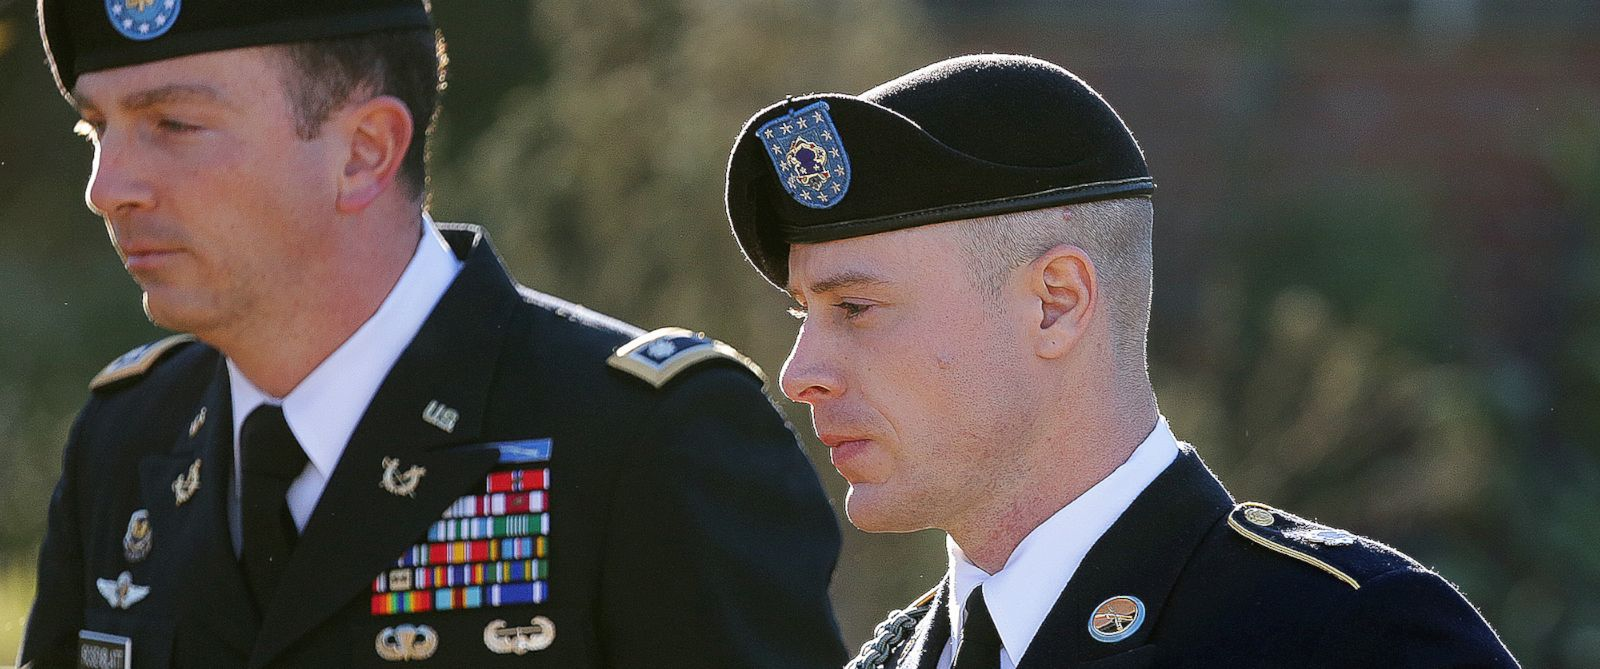 PHOTO: Army Sgt. Bowe Bergdahl arrives for a pretrial hearing at Fort Bragg, N.C., with his defense counsel Lt. Col. Franklin D. Rosenblatt on Jan. 12, 2016.